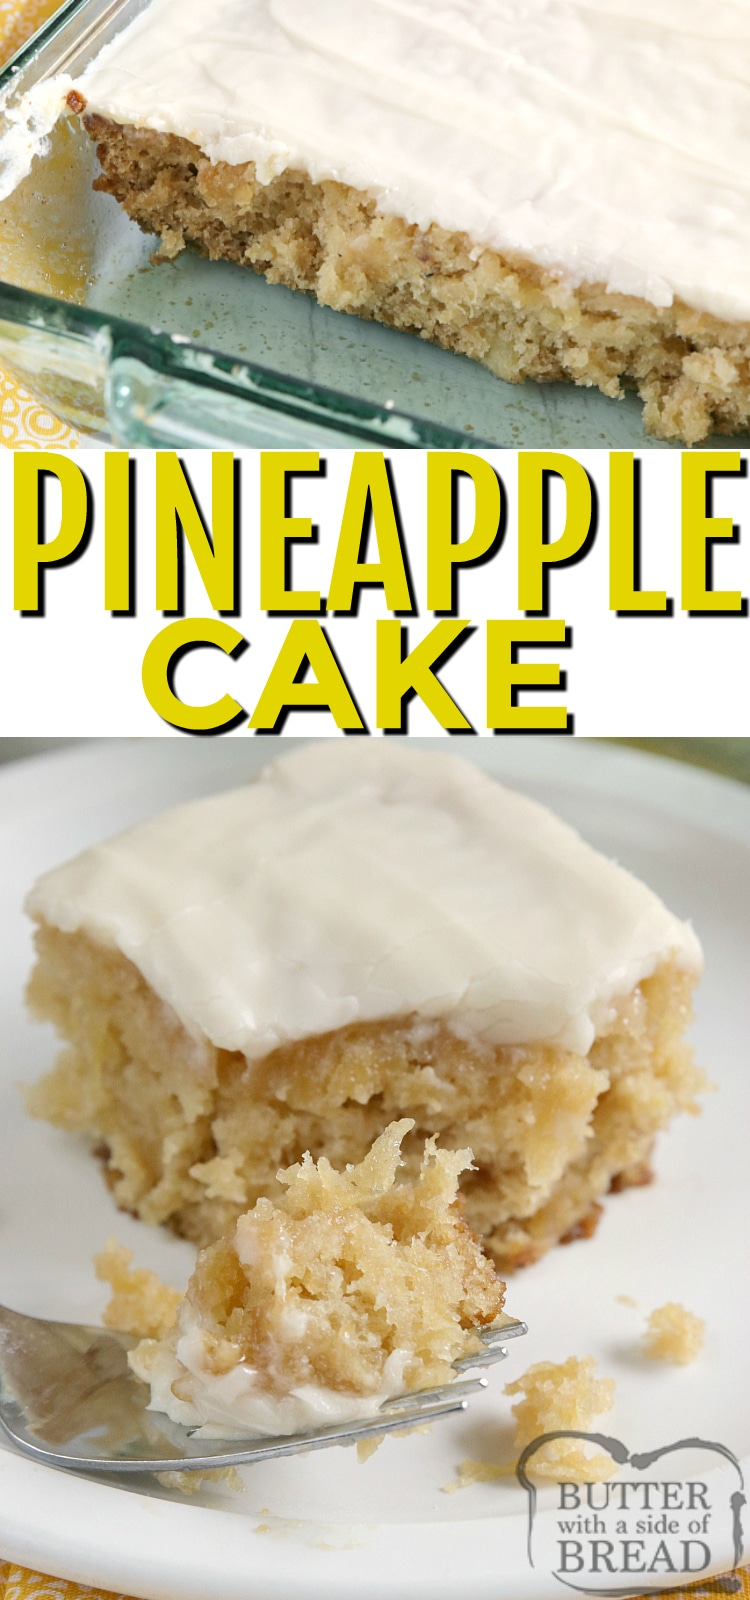 Easy Pineapple Cake made with crushed pineapple, then topped with a simple cream cheese frosting. This easy cake recipe is perfectly moist and full of flavor!